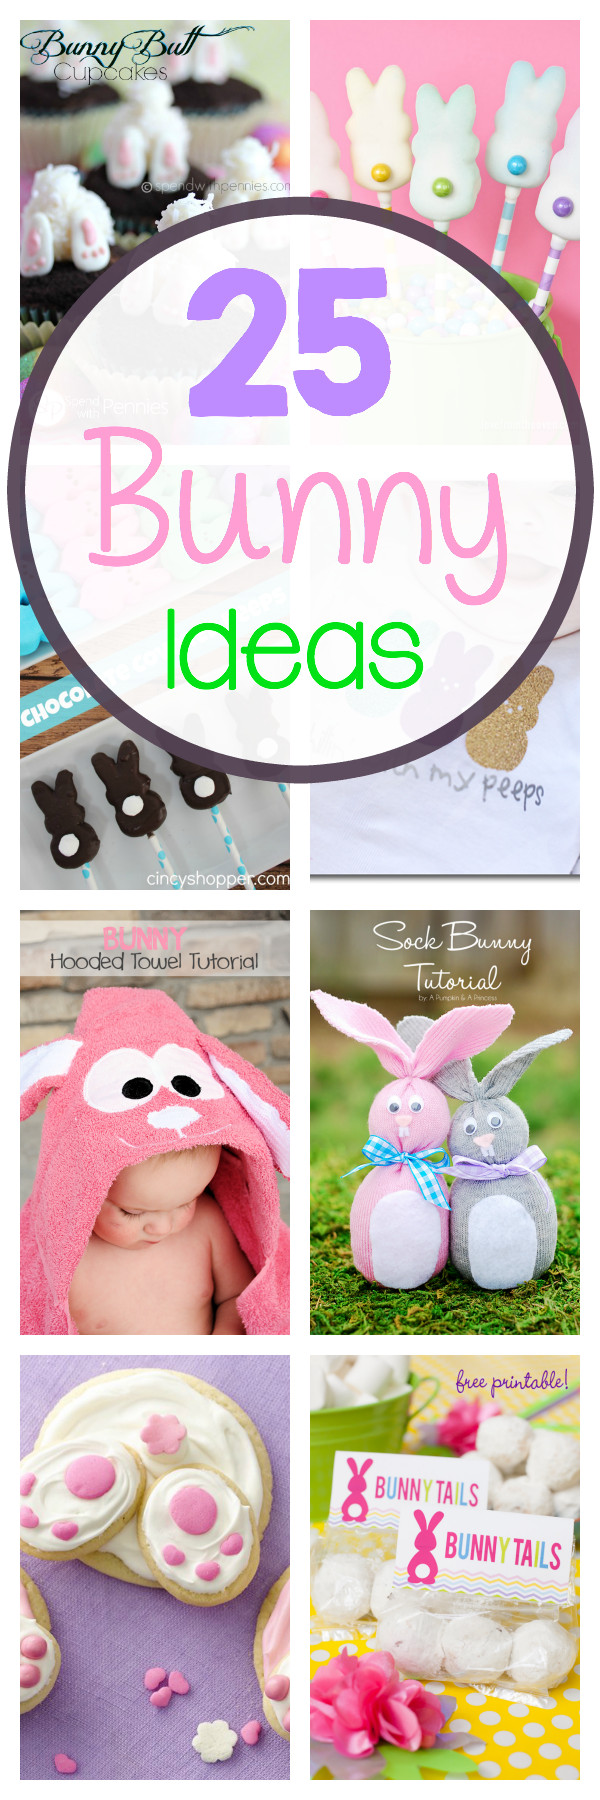 25 Cute Easter Bunny Ideas-Crafts, Treats & More! - Crazy ...